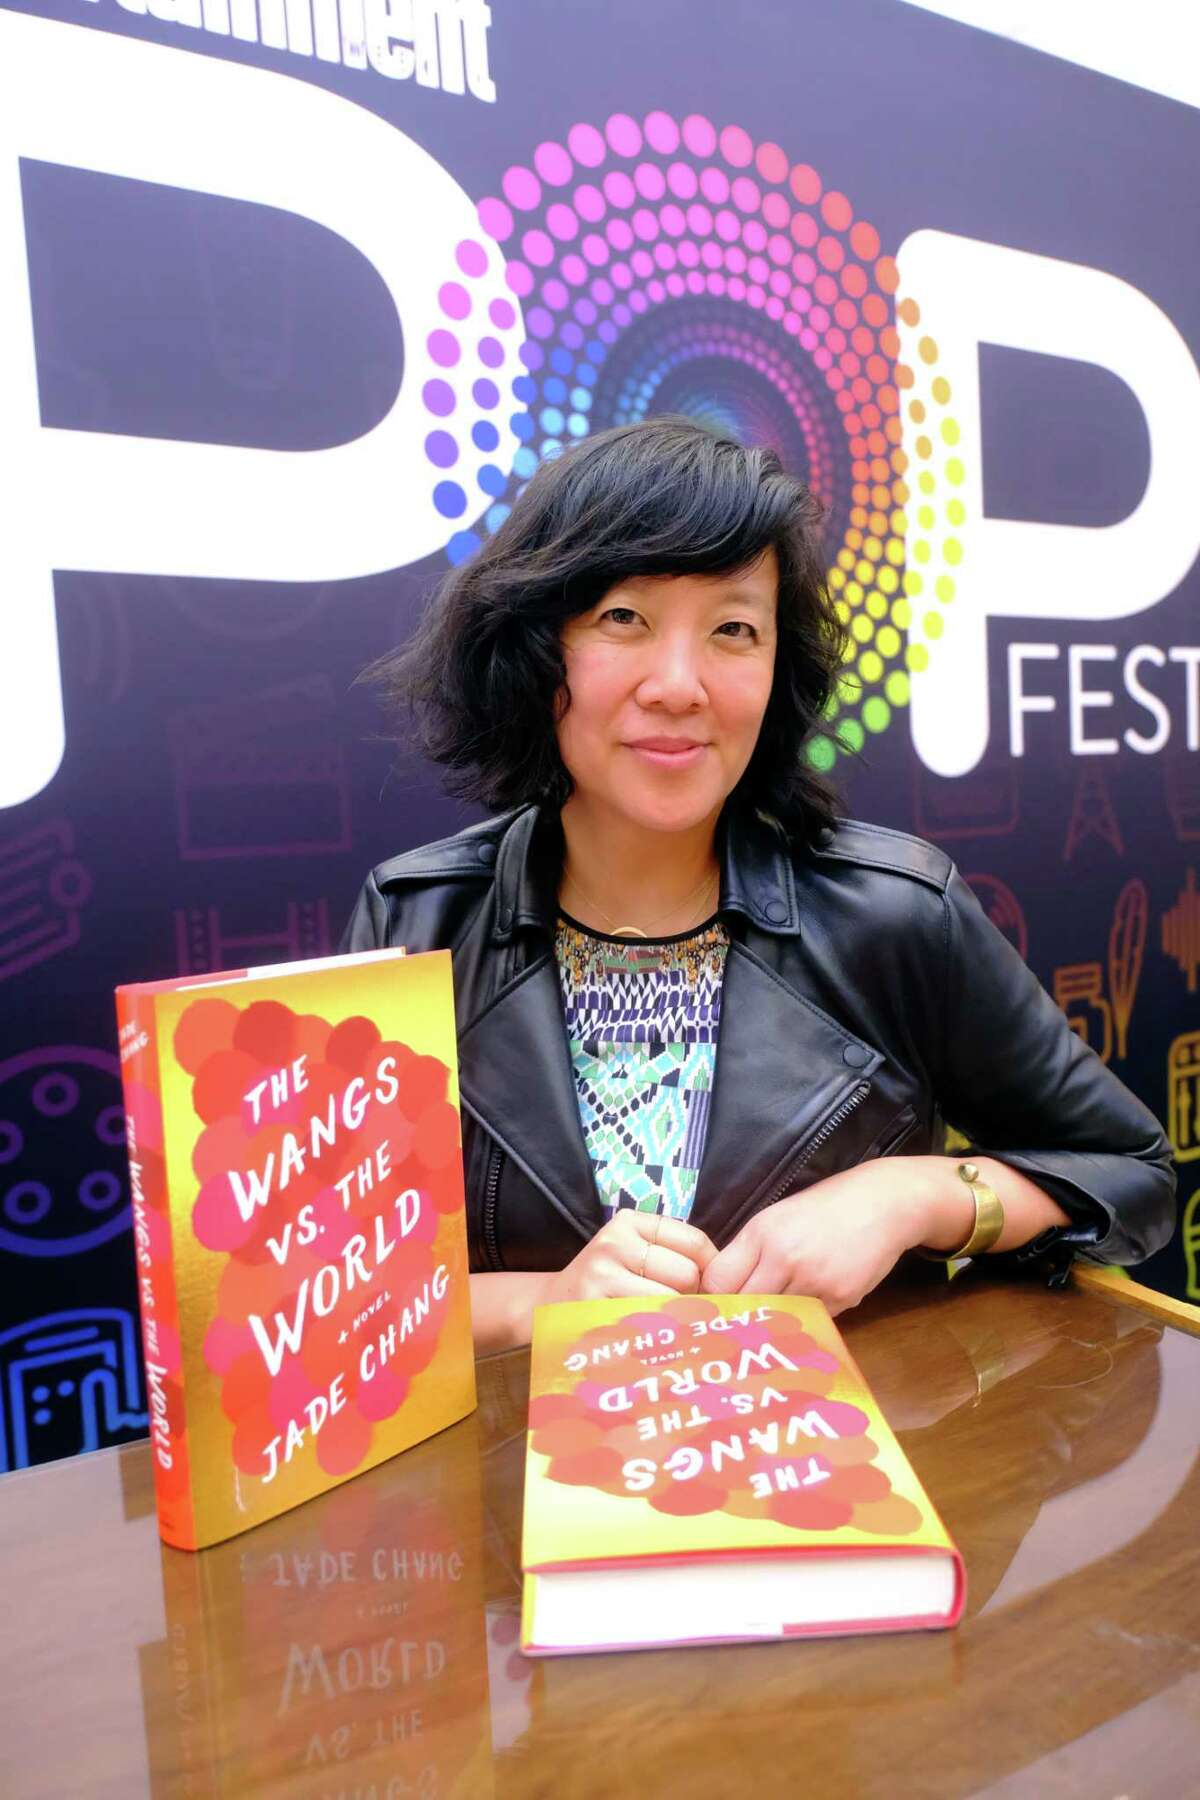 LOS ANGELES, CA - OCTOBER 30: Author Jade Chang signs books at Entertainment Weekly's PopFest at The Reef on October 30, 2016 in Los Angeles, California. (Photo by Frazer Harrison/Getty Images for Entertainment Weekly)